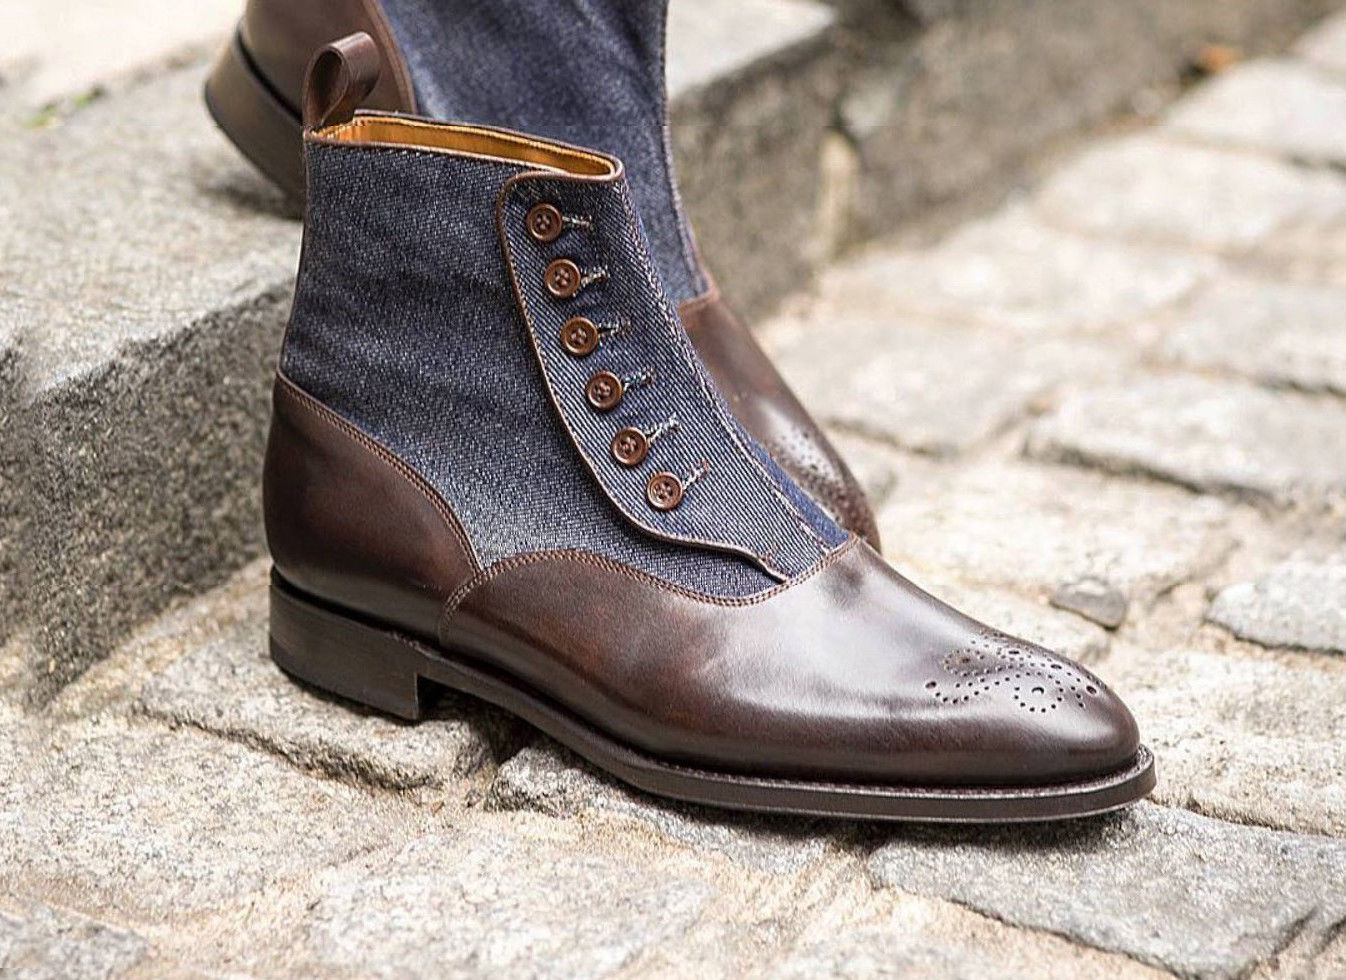 Handmade Men's Brown Leather And Blue Suede Brogues Style Buttons Boots